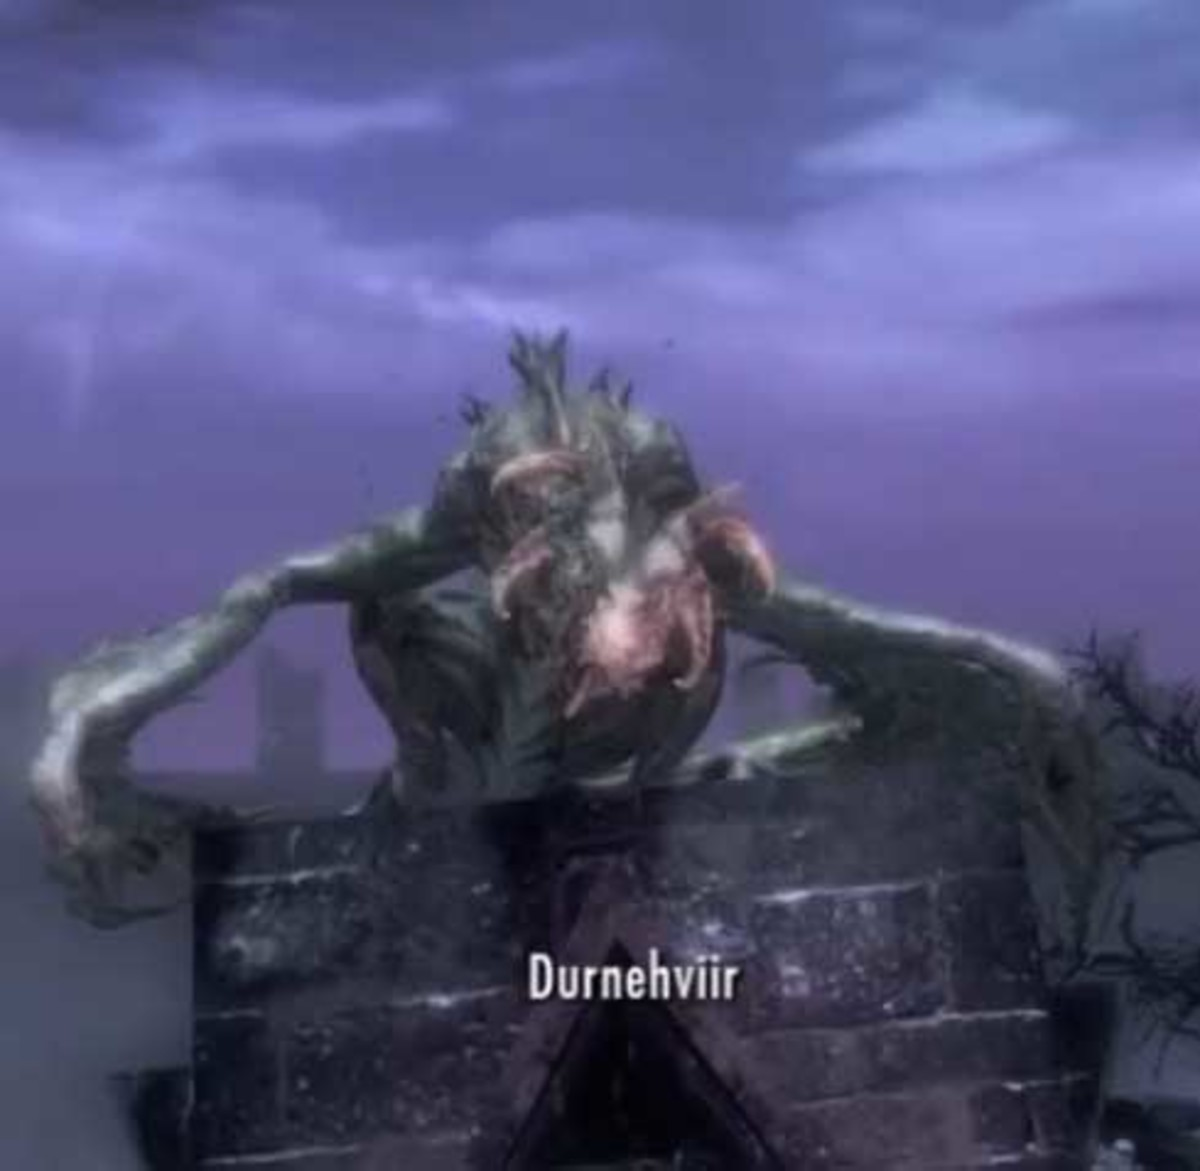 Skyrim Defeat Durnehviir At the Boneyard